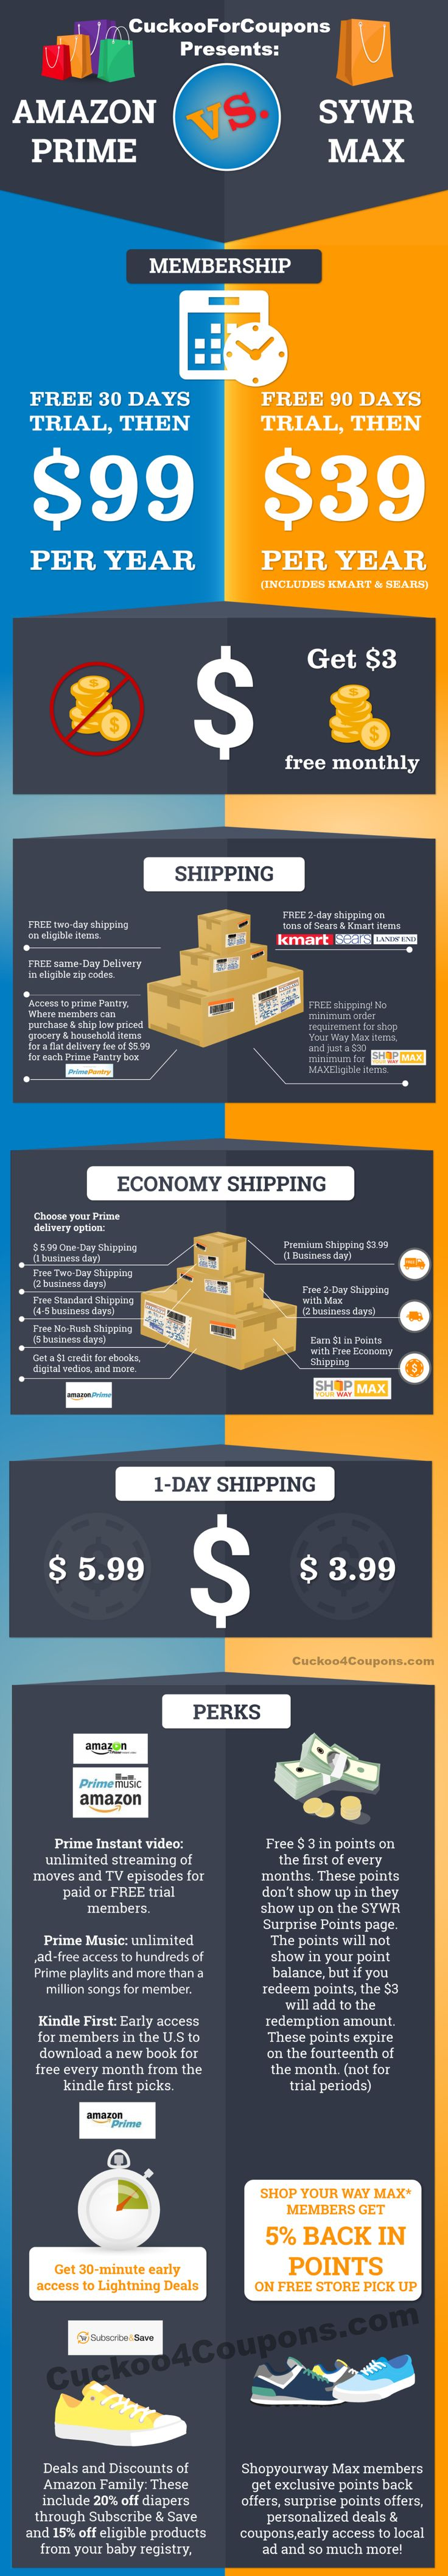 Compare Amazon Prime vs. SYWR Max Free Shipping Membership Programs.  Click on image to sign up for no-risk free memberships.